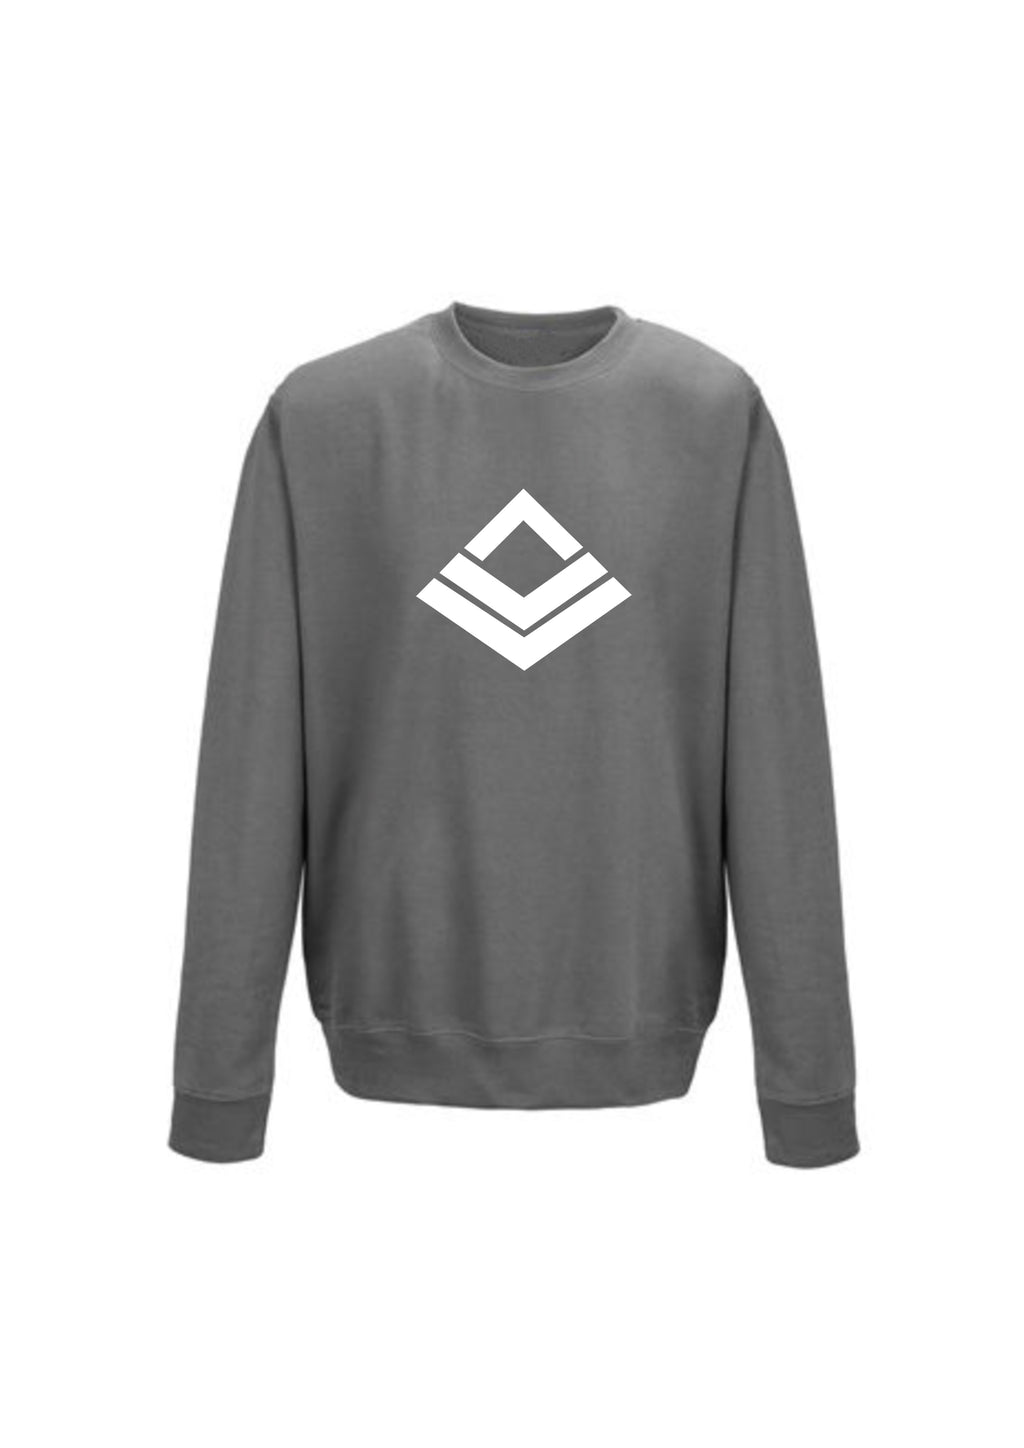 Steel Grey Swaggerlicious White Symbol Sweatshirt - swaggerlicious-clothing.com